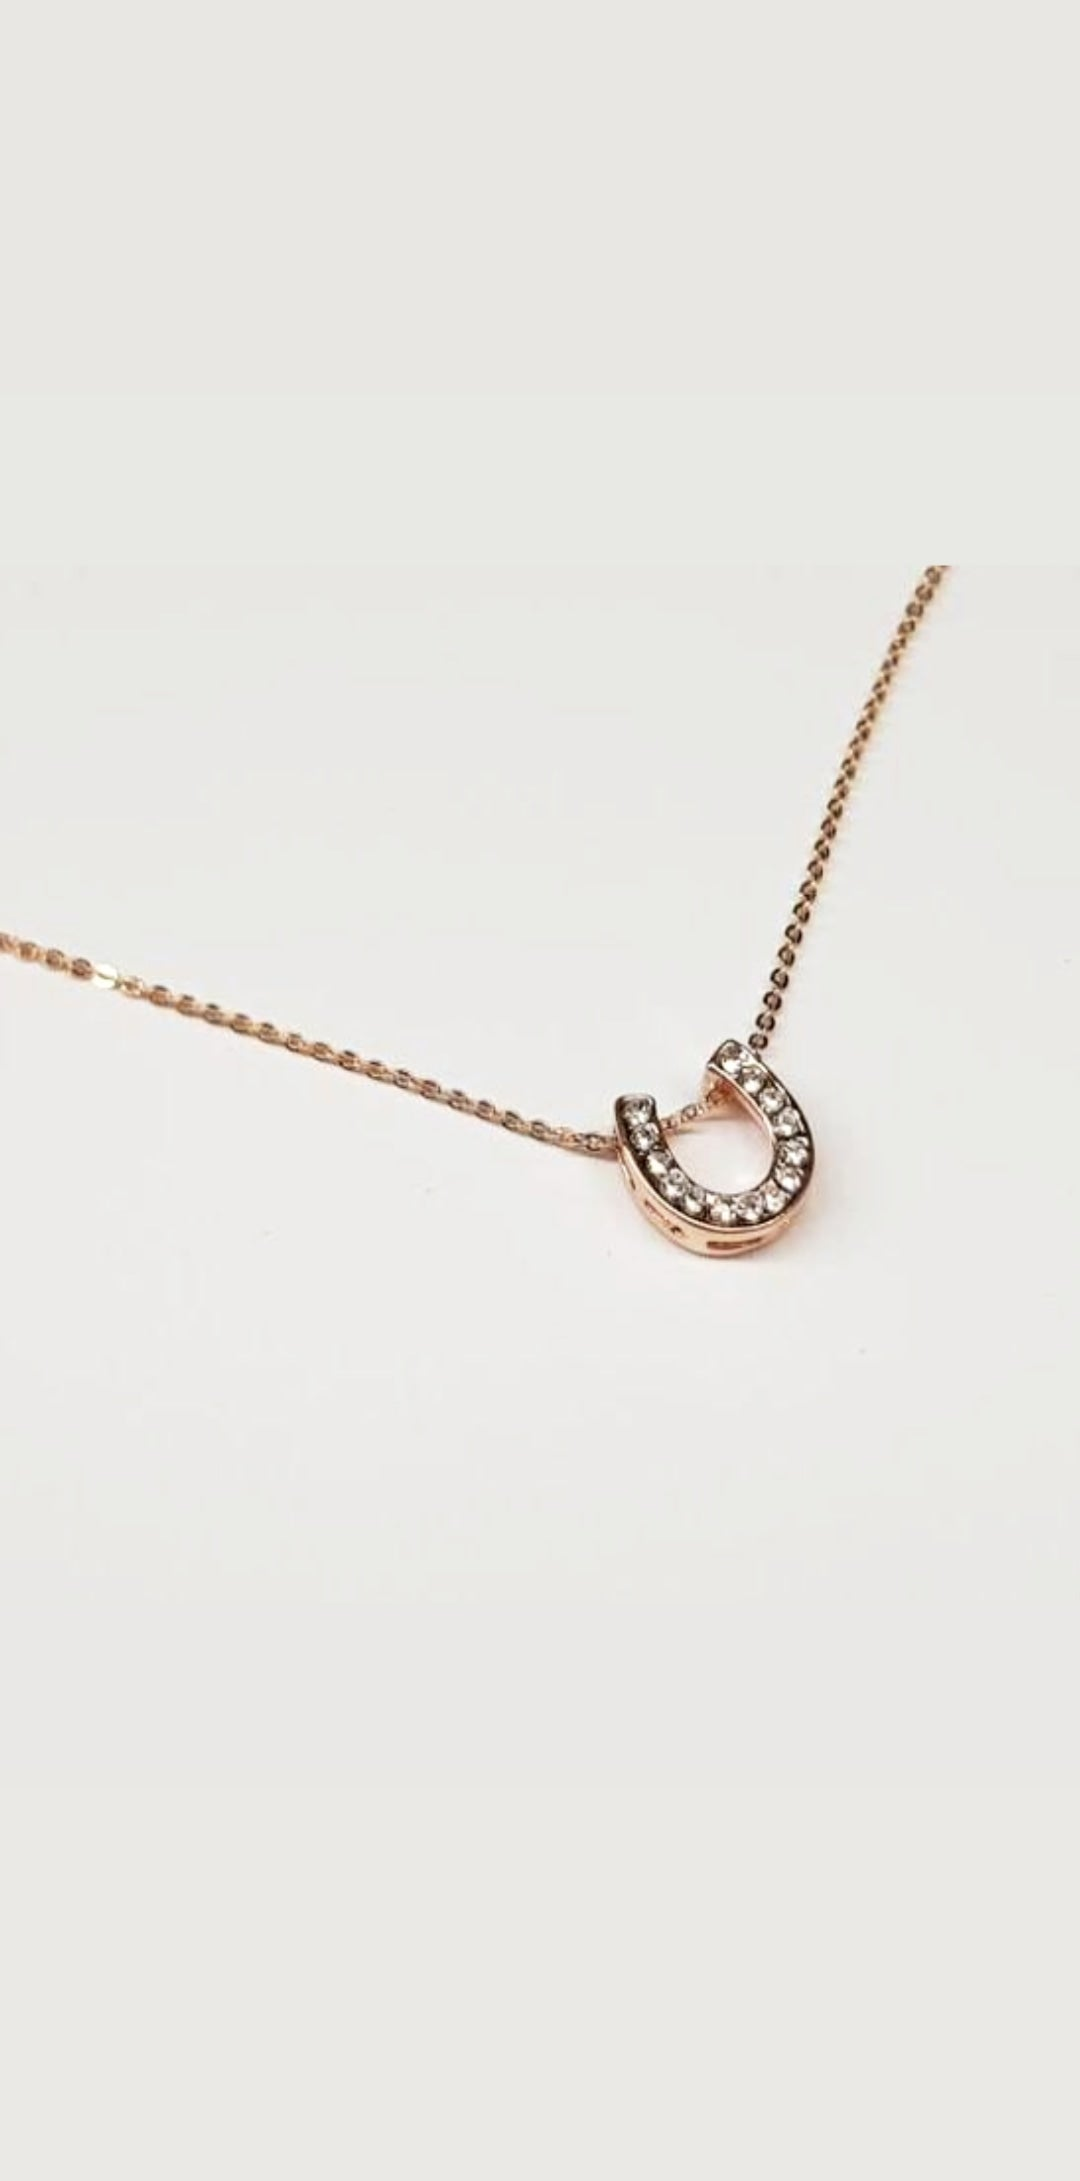 Rose gold plated horseshoe